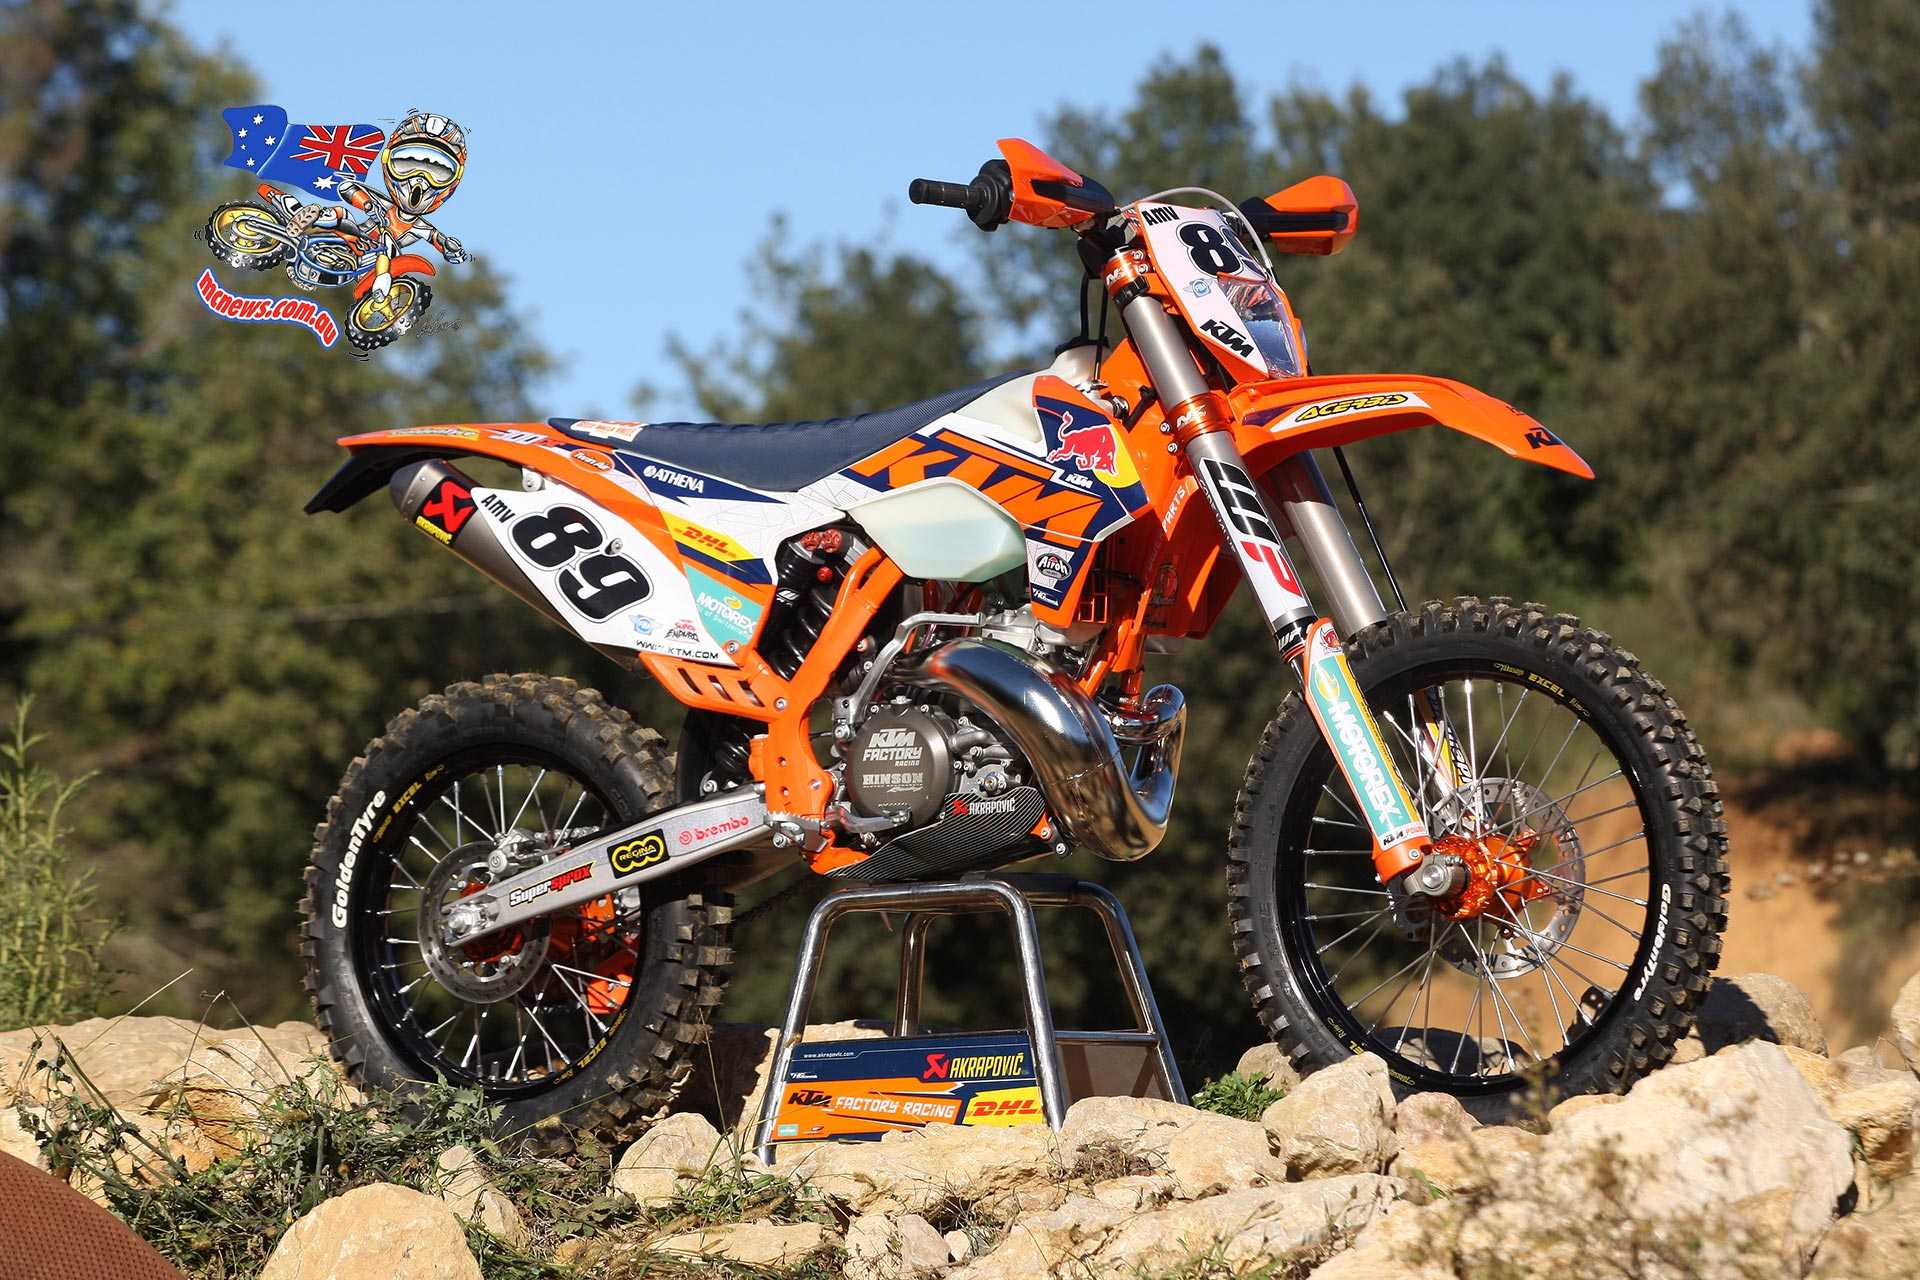 KTM 300 MXC 2002 images #85465